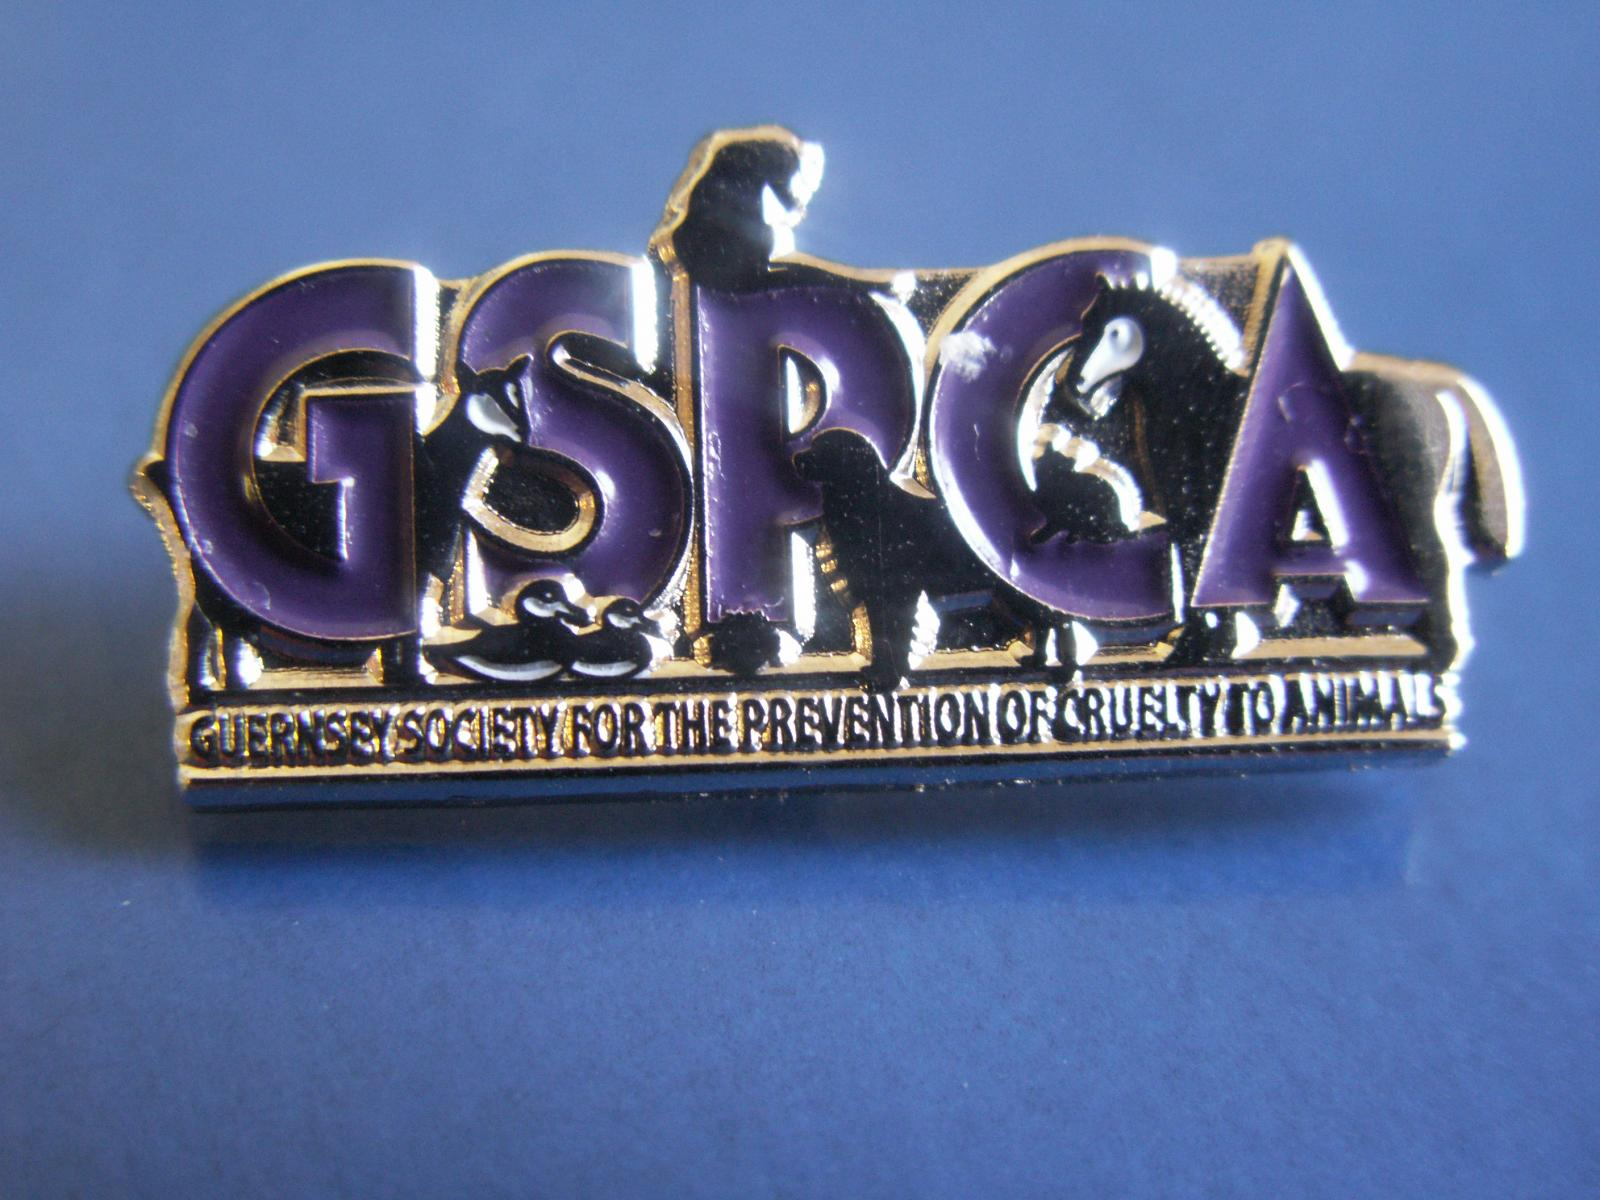 To become a GSPCA member